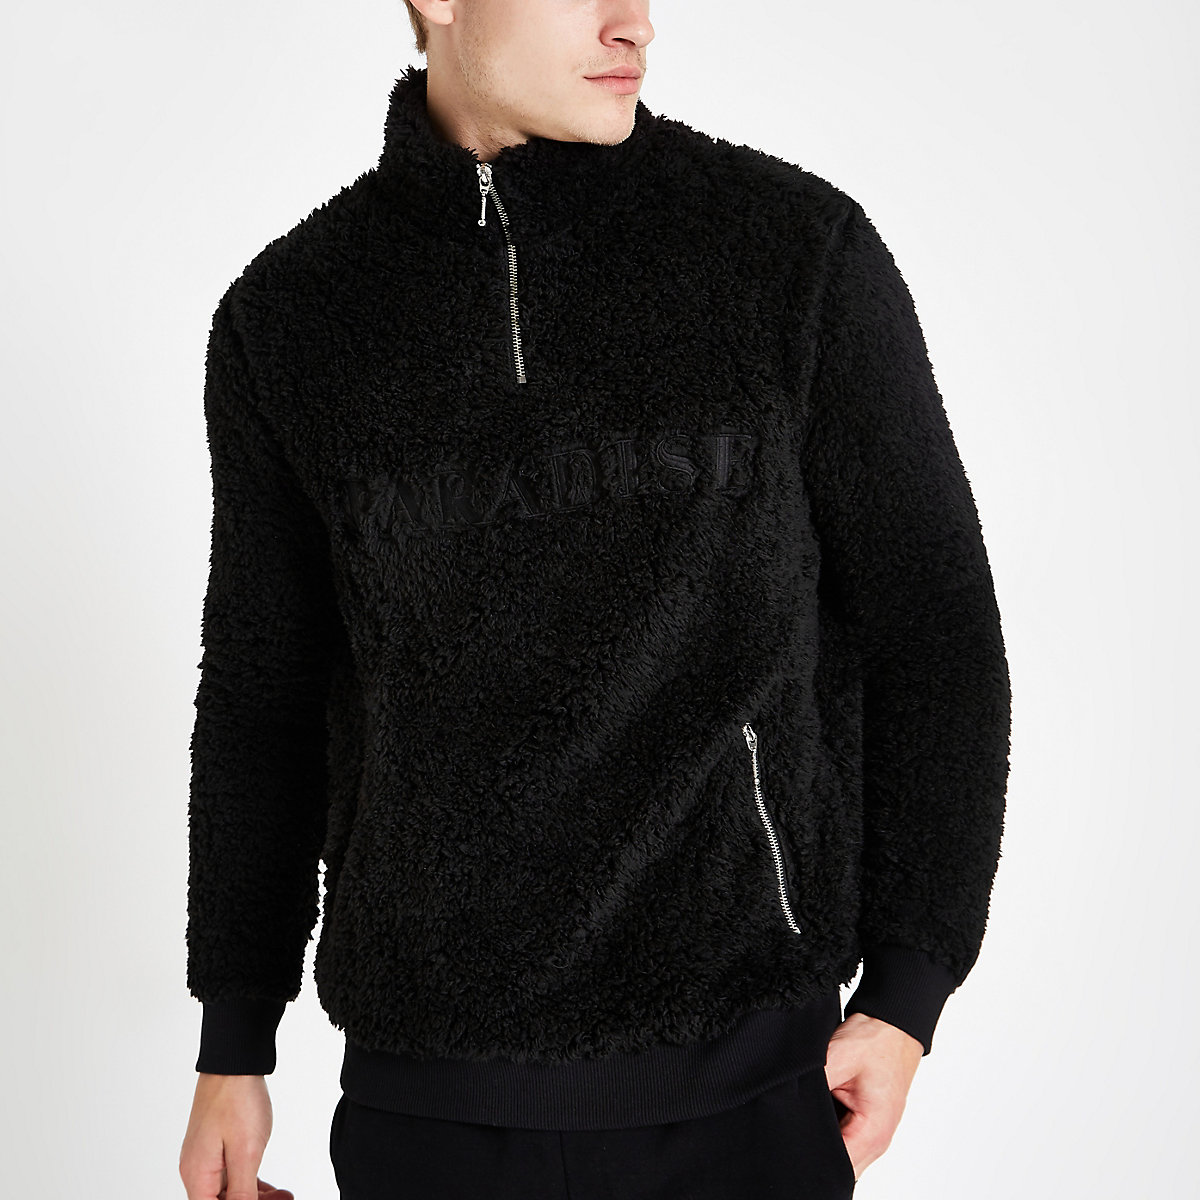 Black fleece zip funnel neck sweater